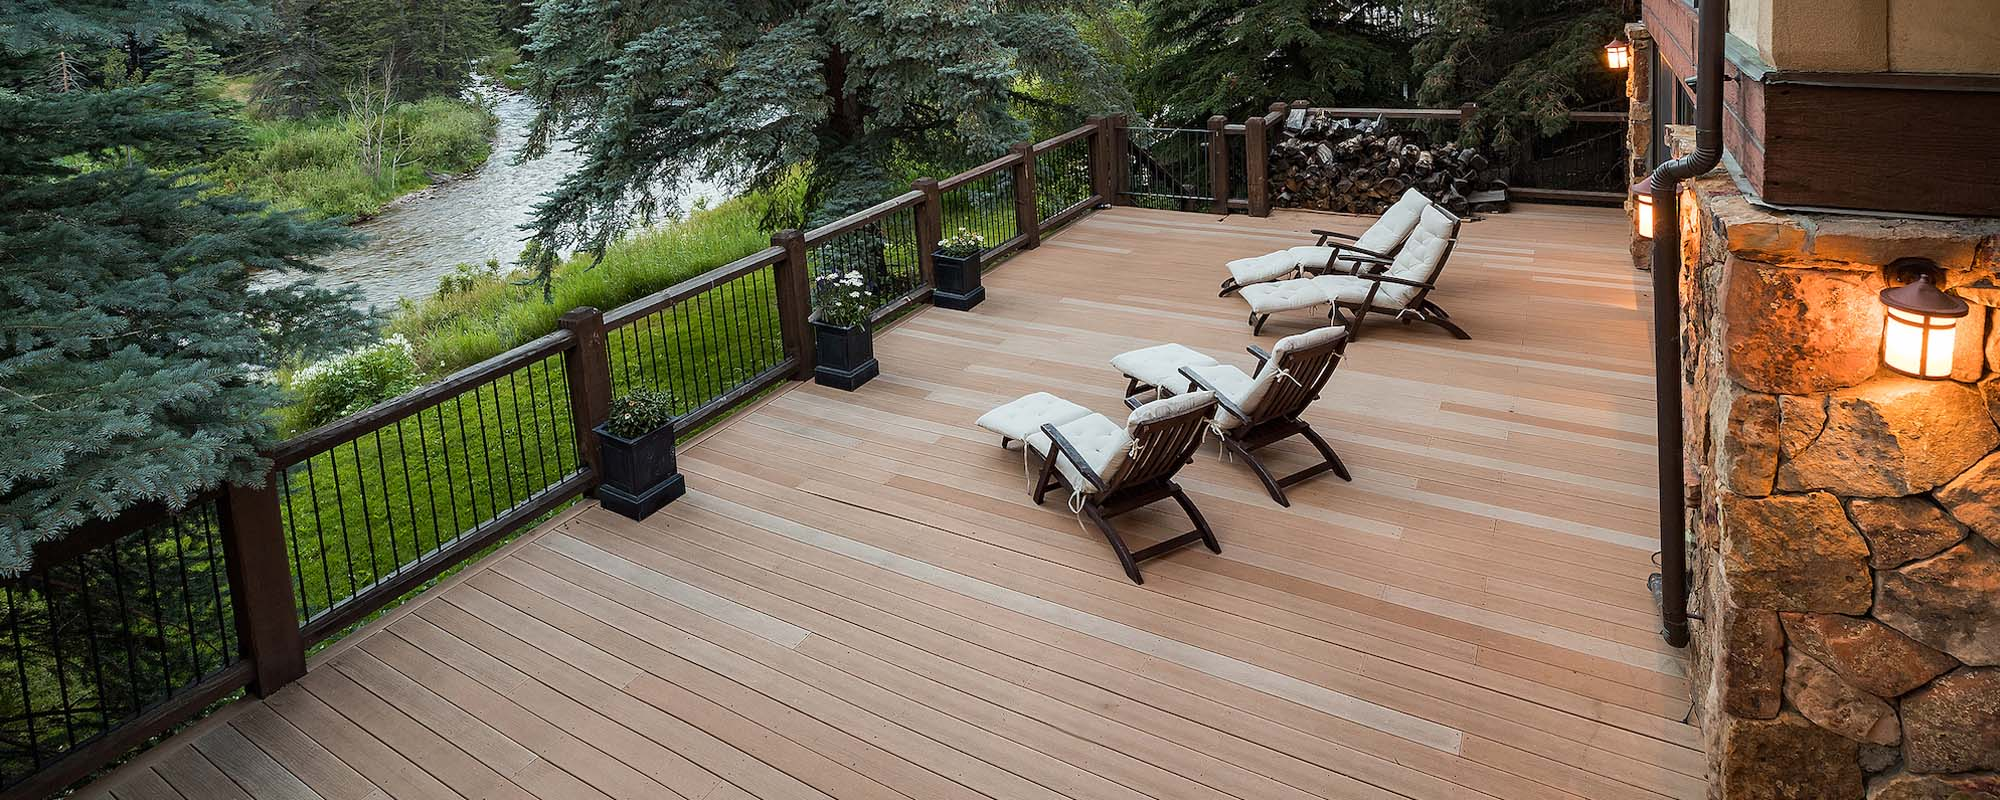 custom wood deck on a stream custom deck builder ocean county NJ - Gambrick